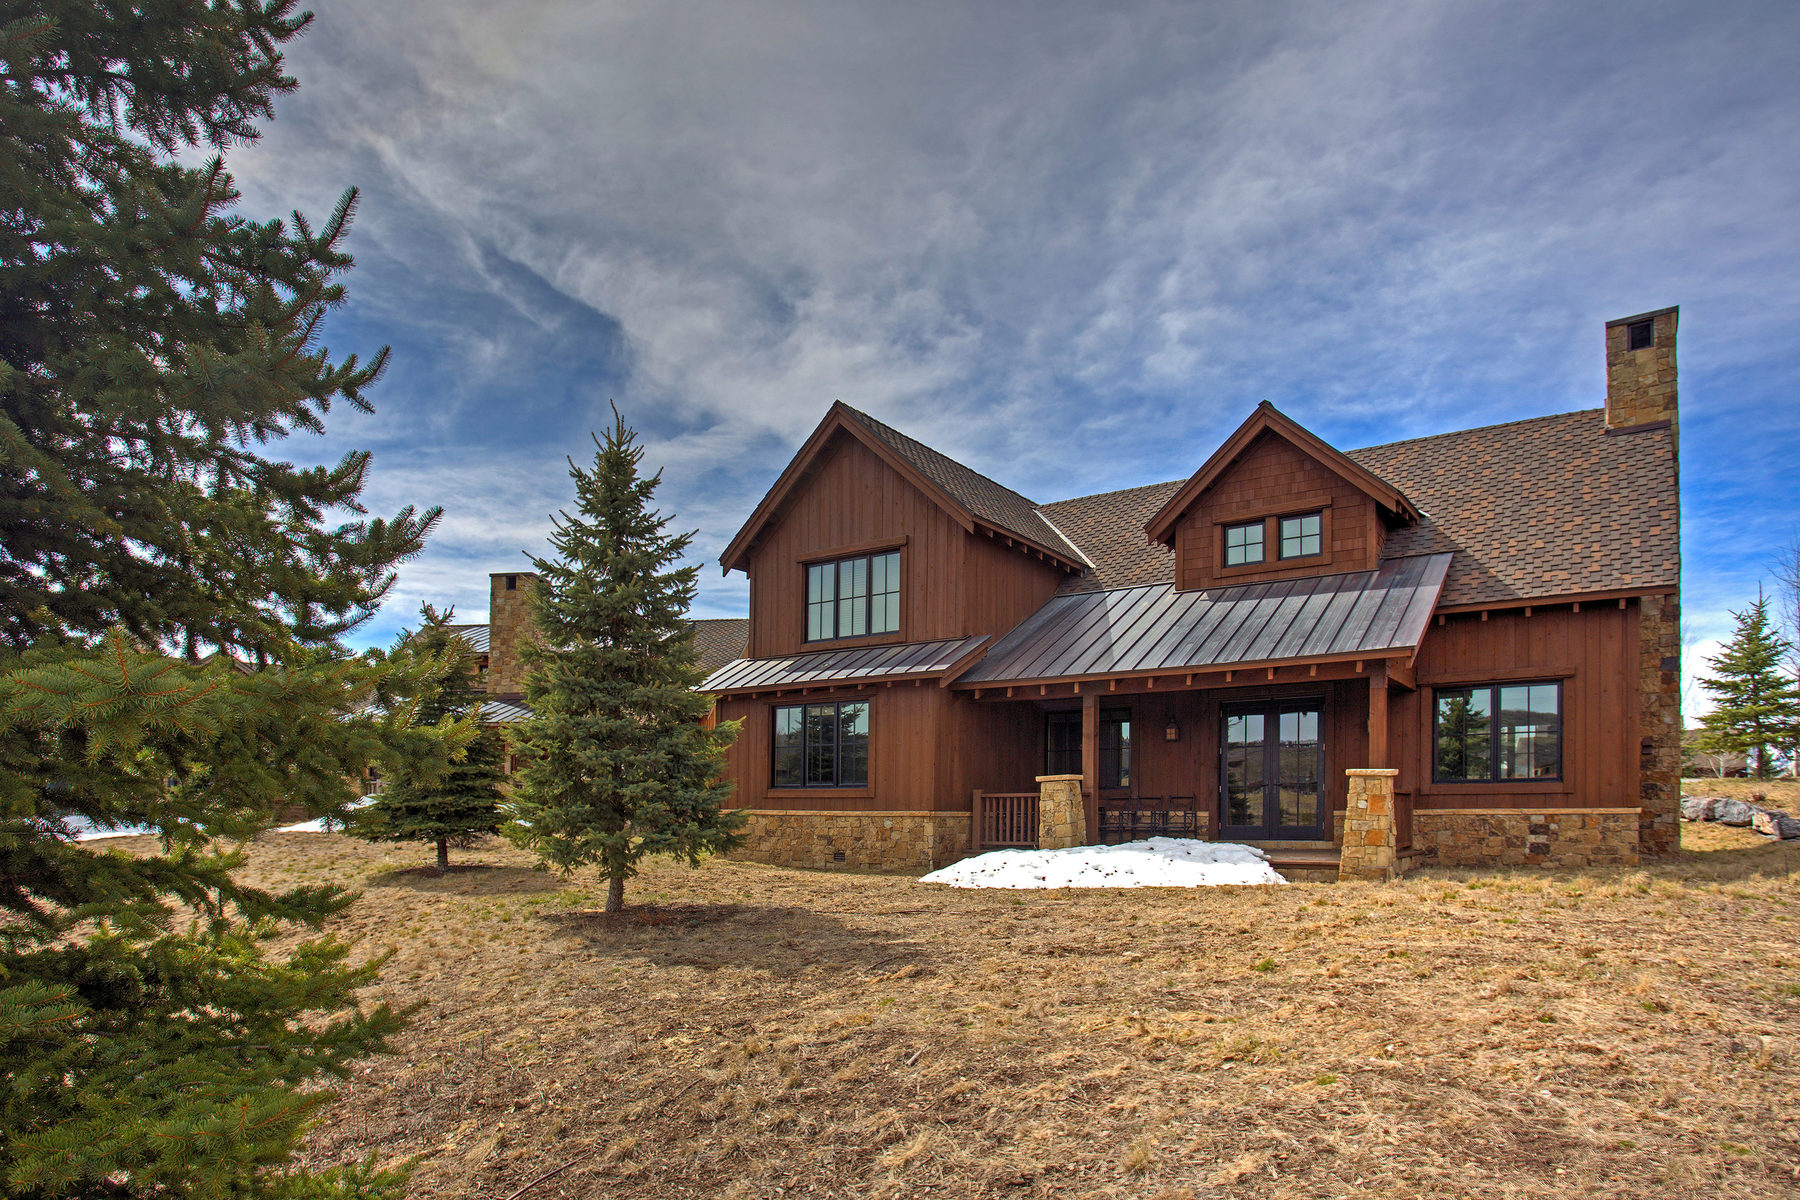 Single Family Home for Sale at Beautiful Cabin in Promontory 3604 Blue Sage Trl Park City, Utah, 84098 United States